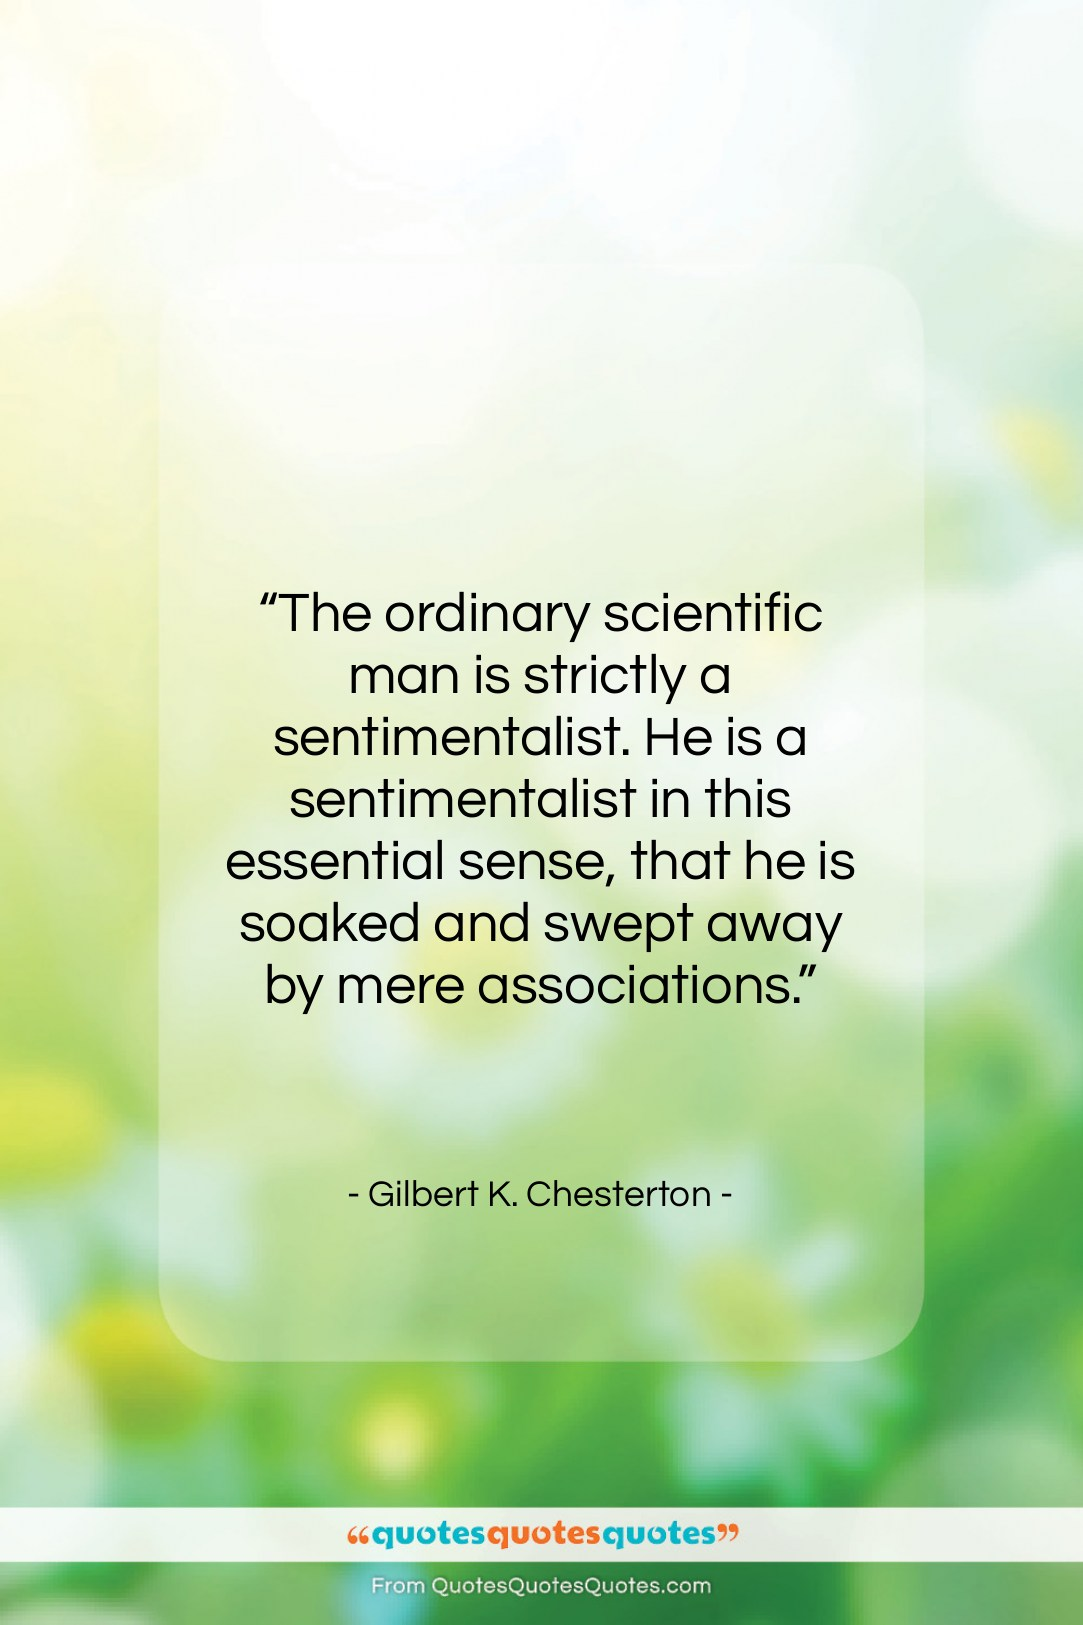 """Gilbert K. Chesterton quote: """"The ordinary scientific man is strictly a…""""- at QuotesQuotesQuotes.com"""